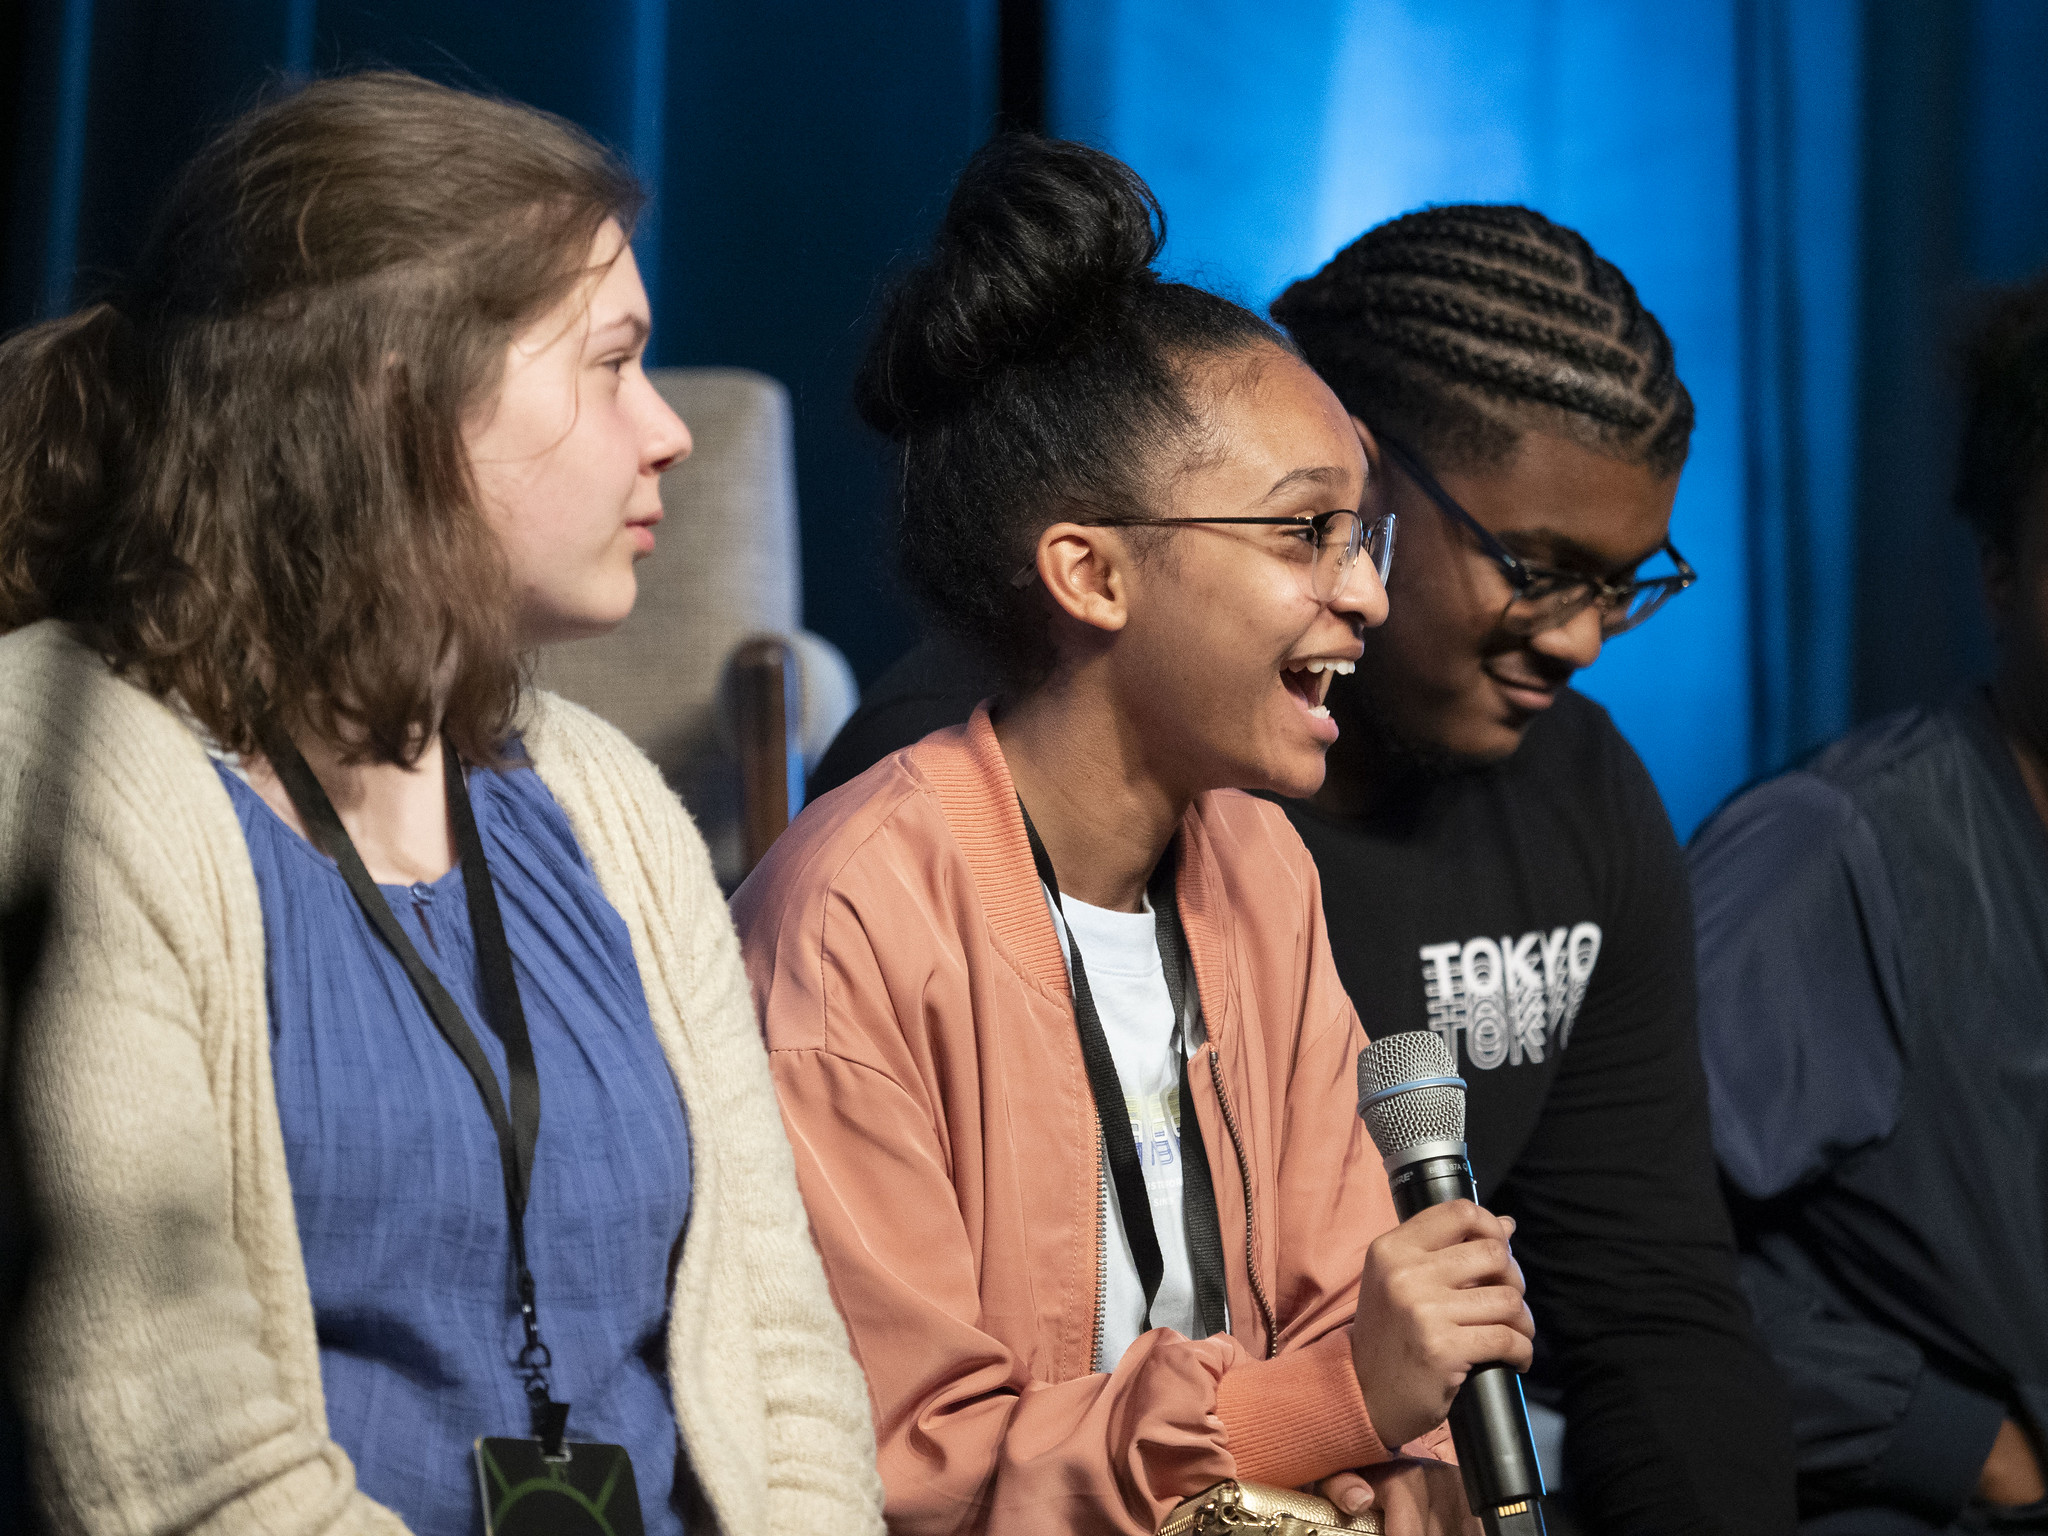 Sonscreen 2019 high school filmmakers answer audience questions after a film block screening.